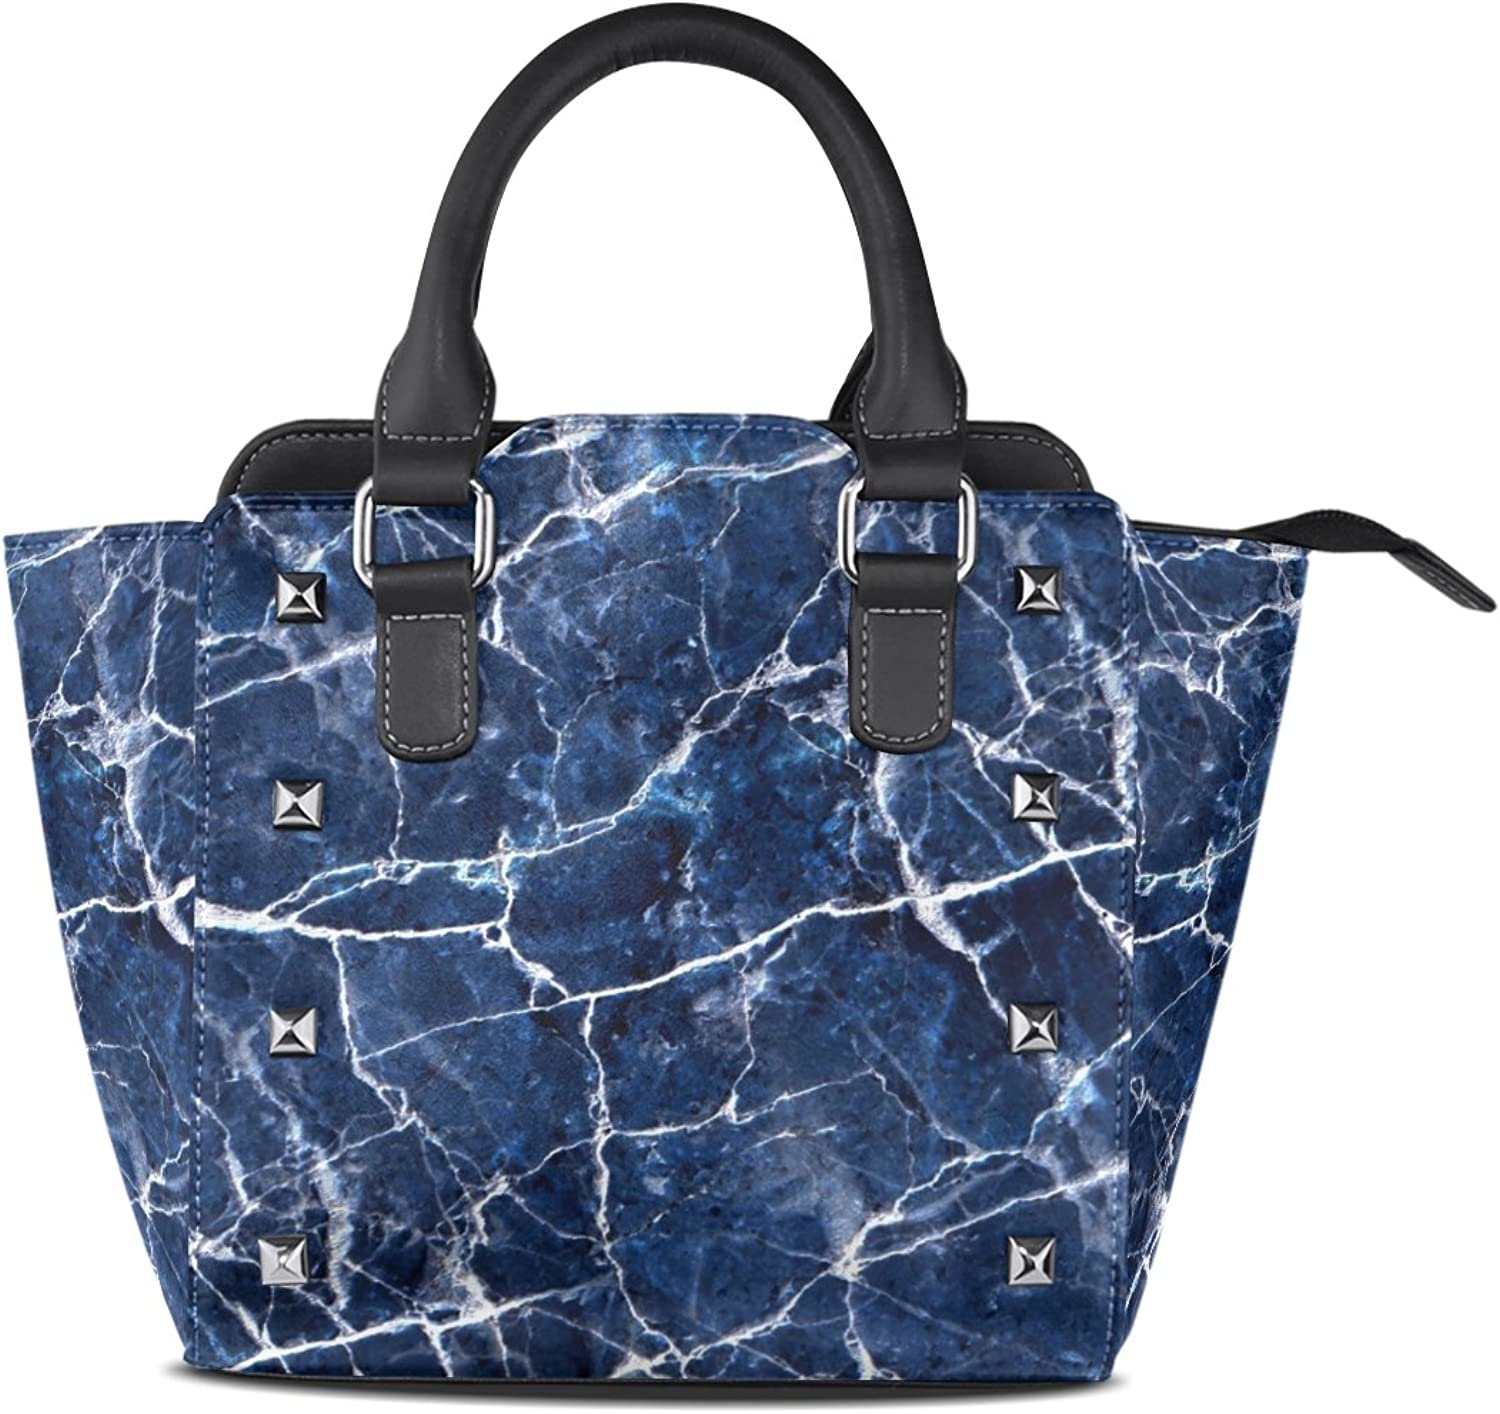 My Little Nest Women's Top Handle Satchel Handbag bluee Marble Texture Pattern Ladies PU Leather Shoulder Bag Crossbody Bag